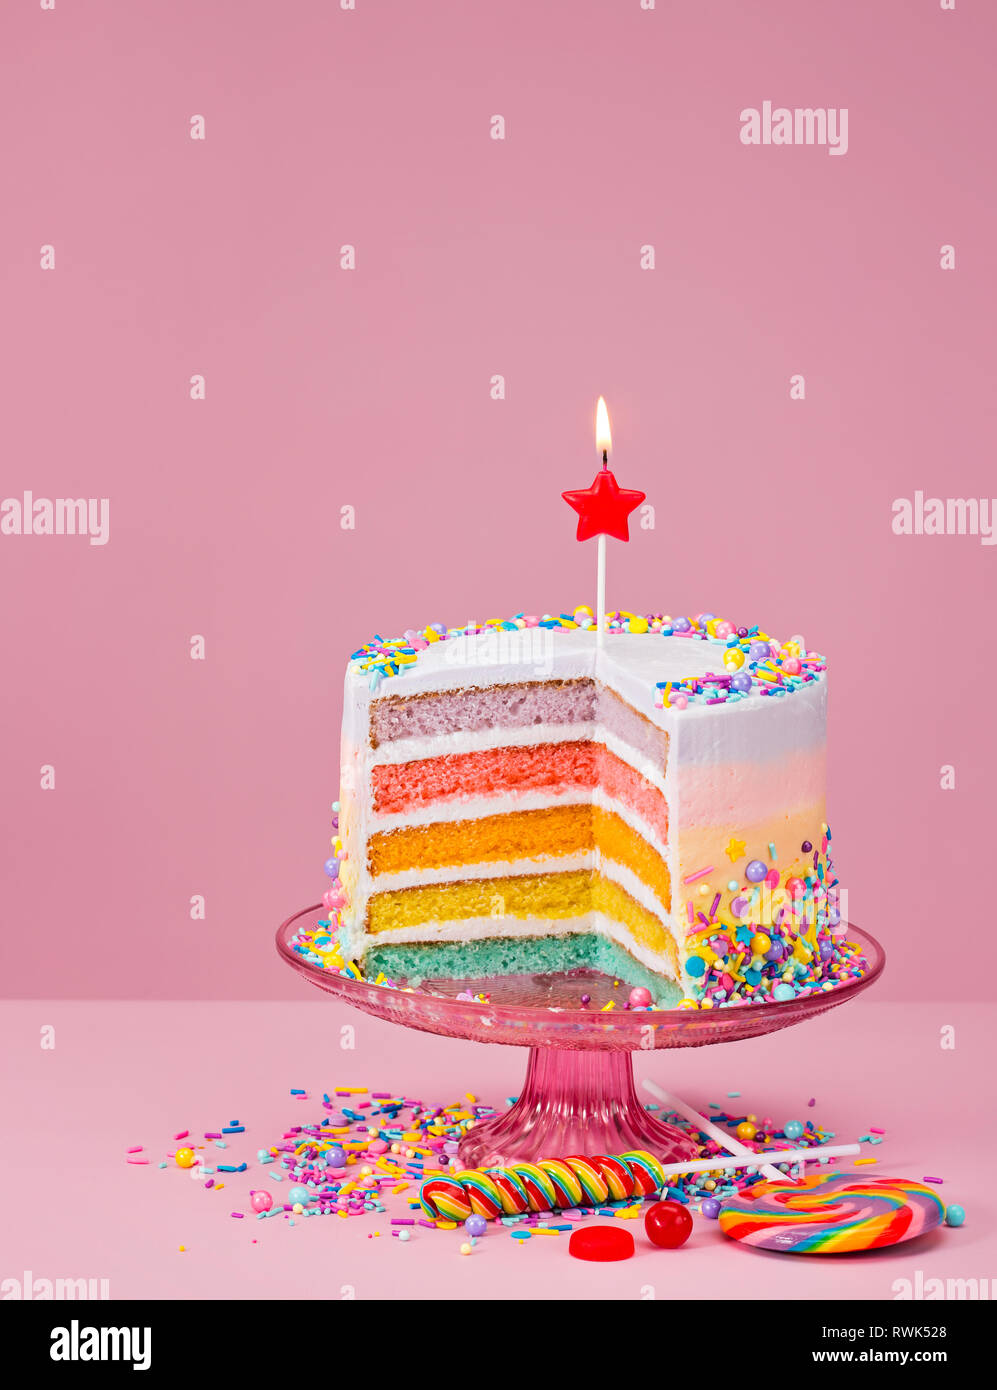 Colorful Layered Birthday Cake With Sprinkles And Candy Over A Pink Background